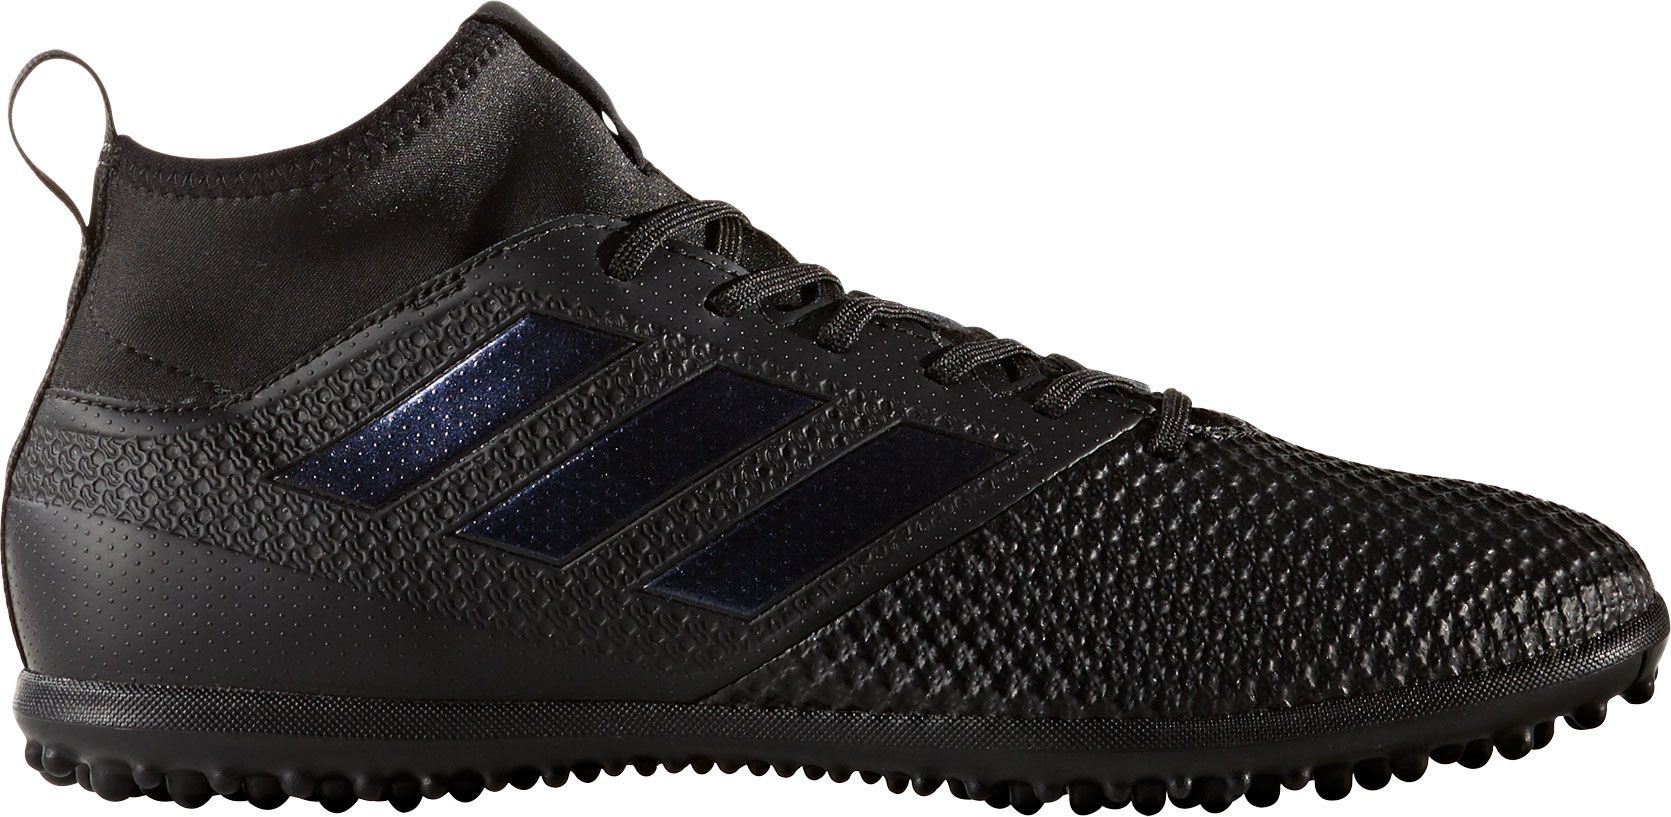 f6cdc66796f8 adidas Men s Ace Tango 17.3 Turf Soccer Cleats